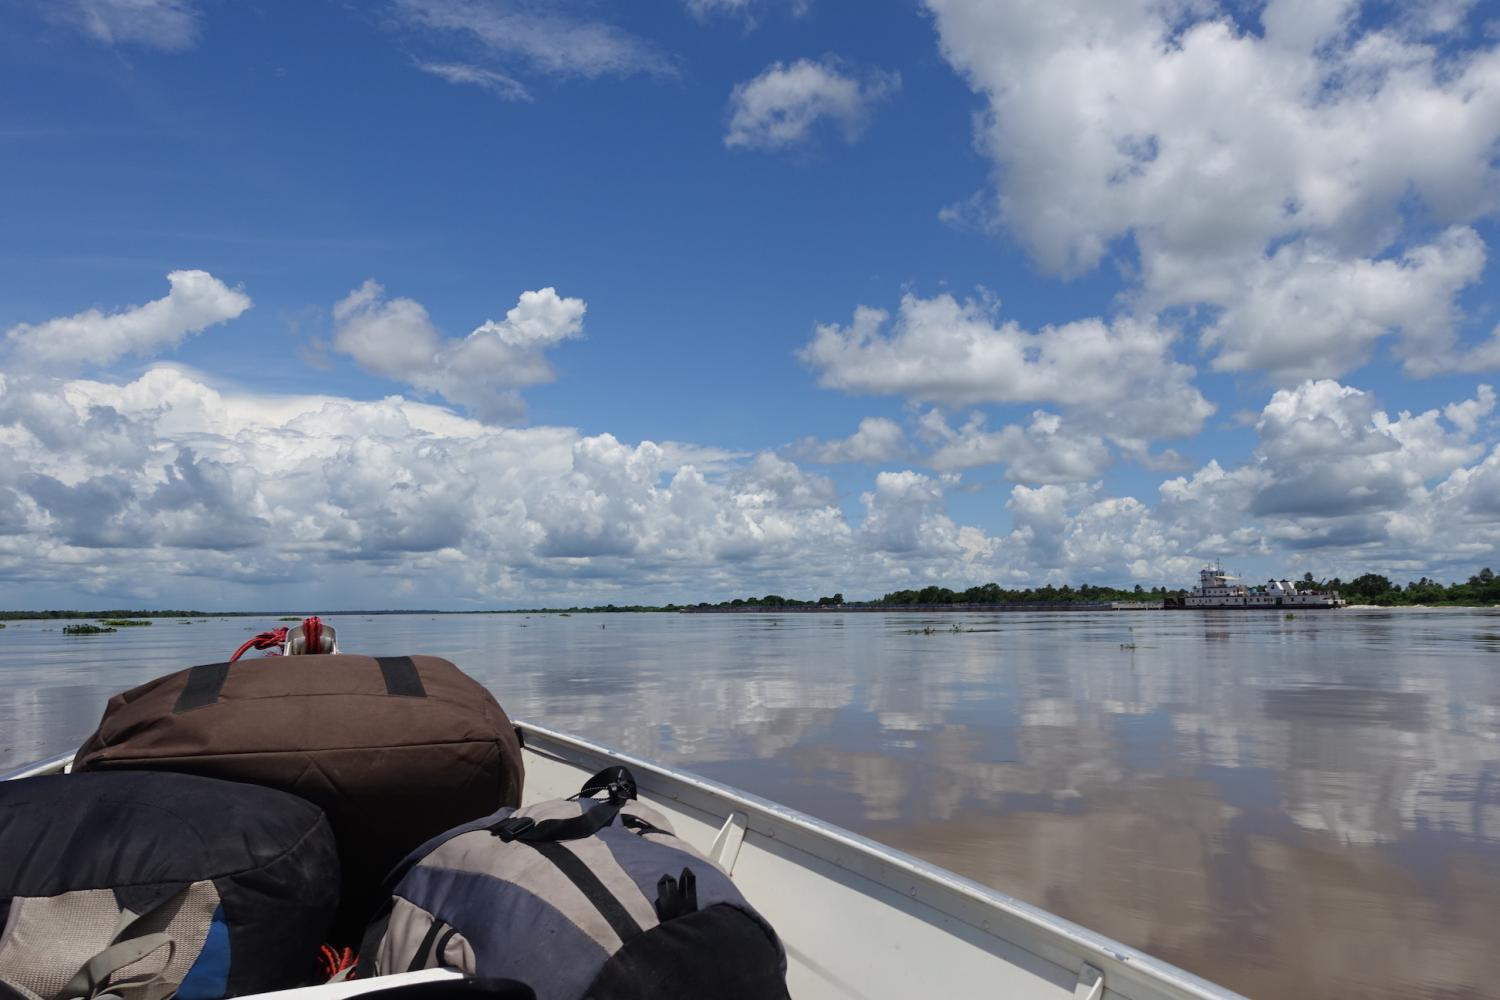 Boat on calm Rio Paraguay river